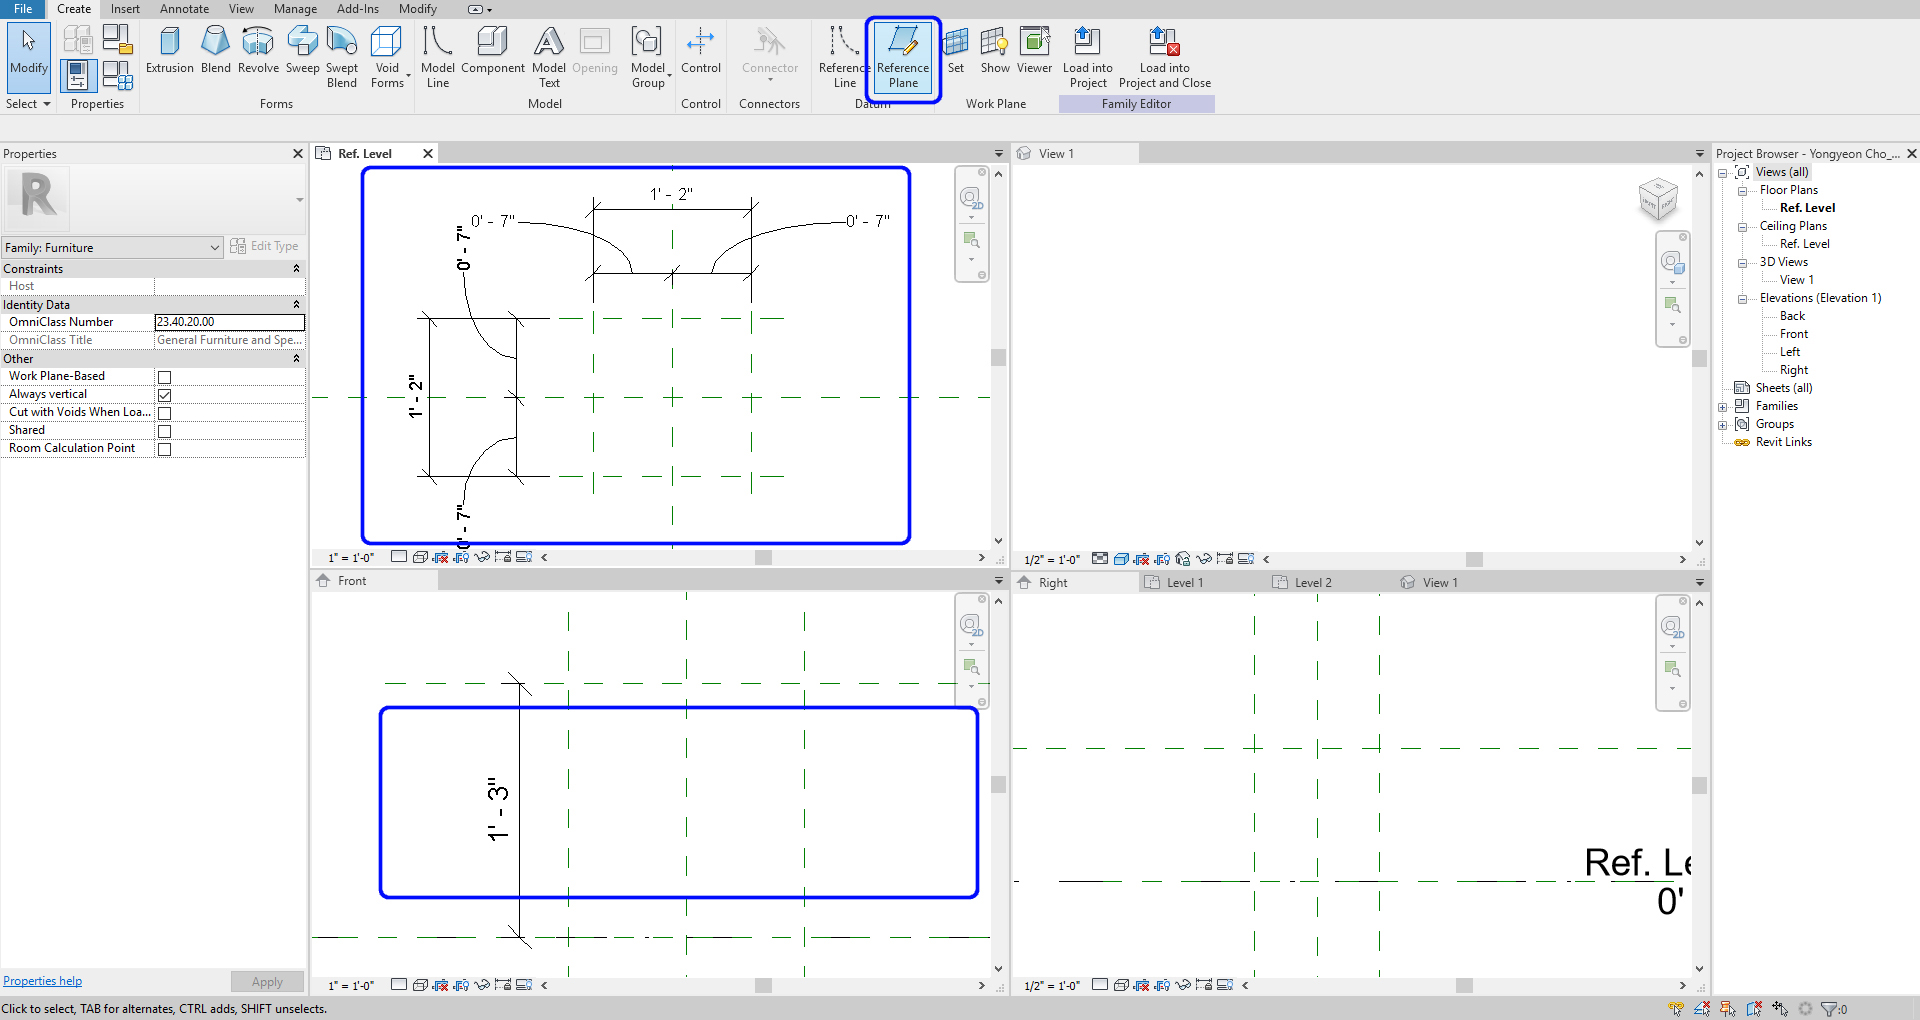 It indicates how to create reference planes with dimensions.